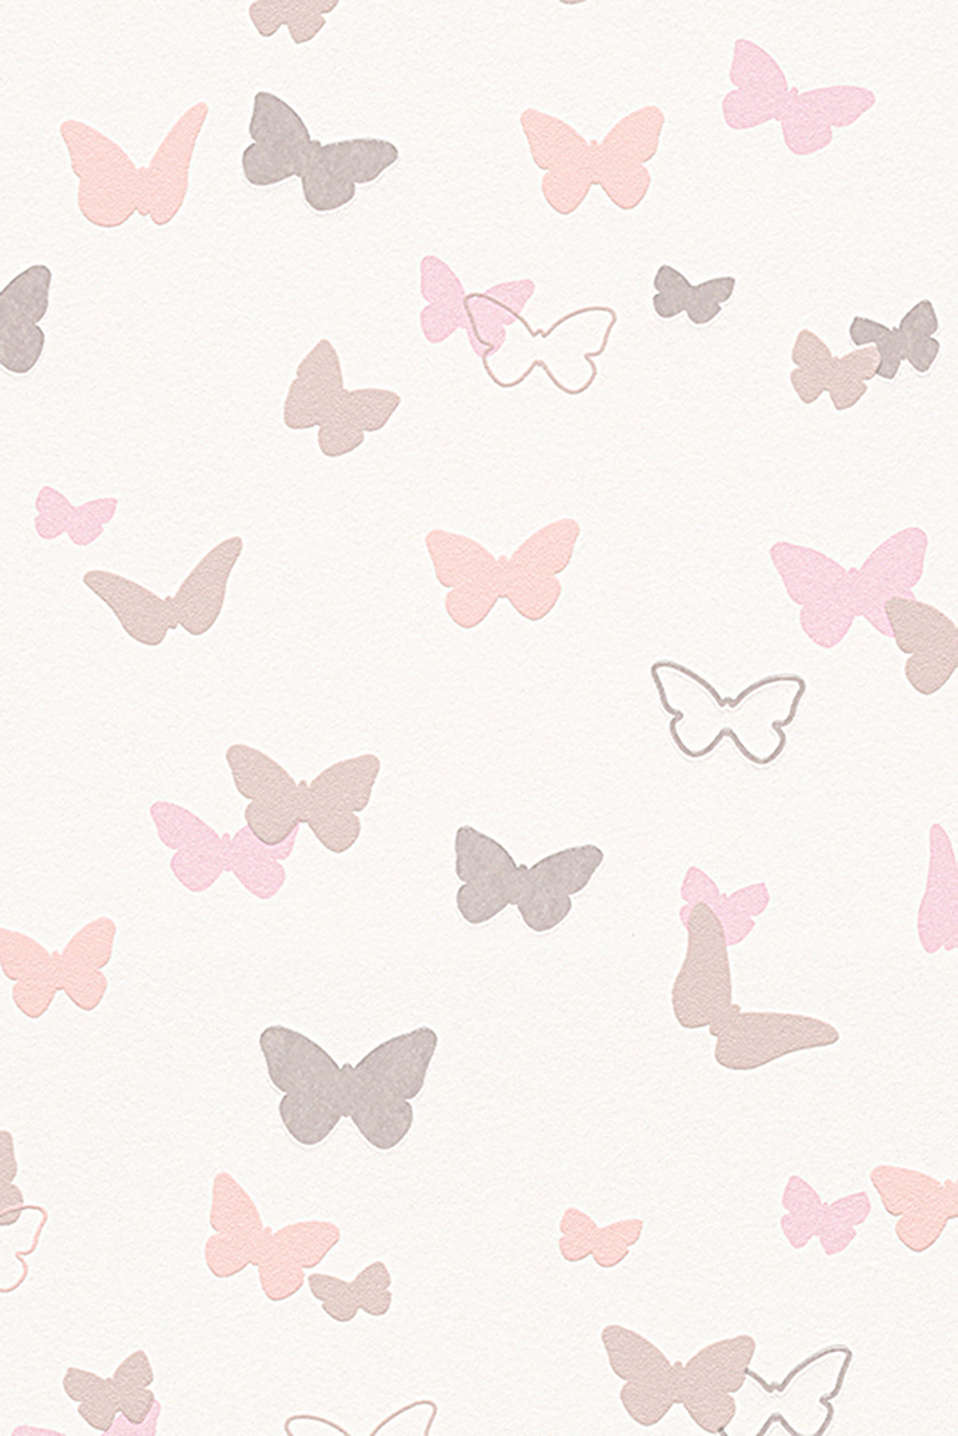 with flat and raised butterfly motifs, non-woven textile